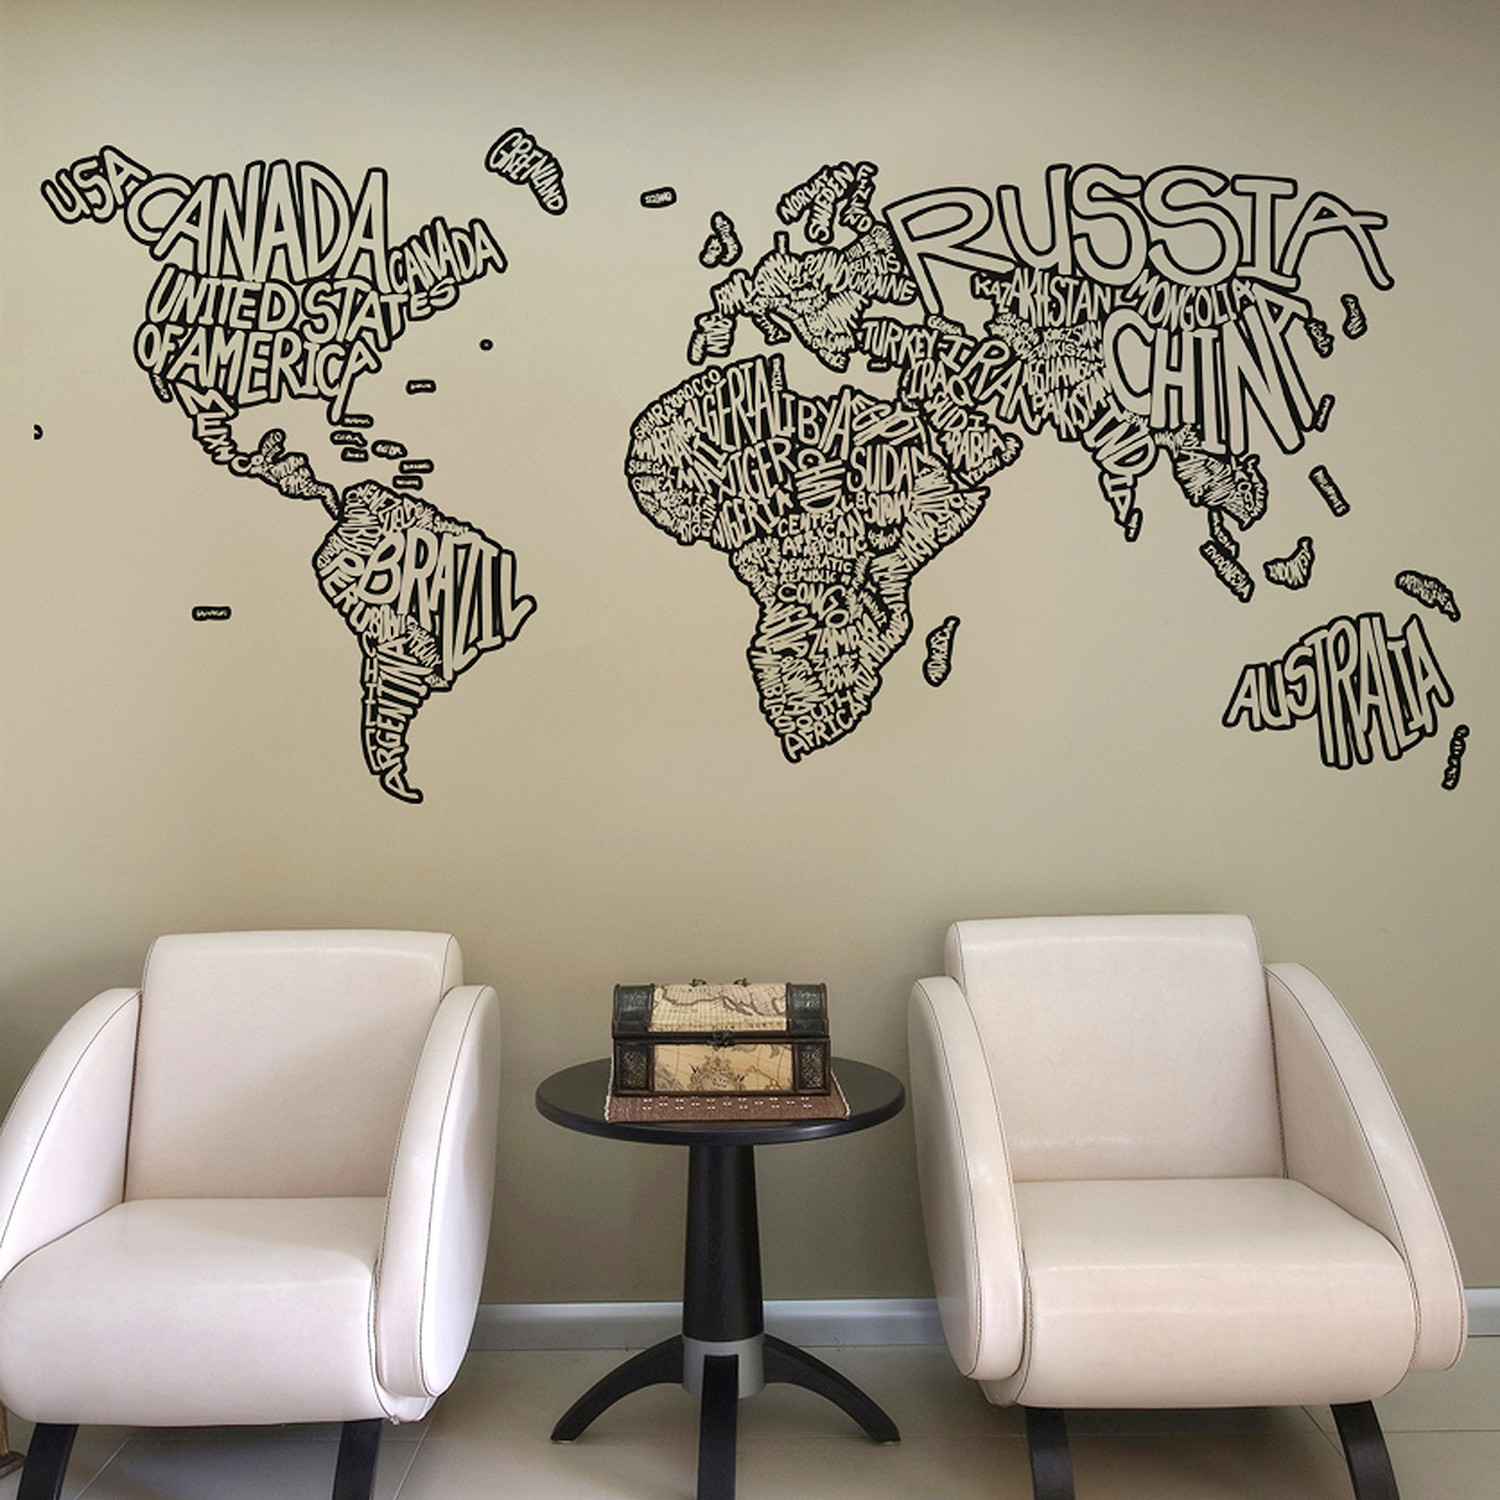 Country name world map 72w x 34h stickerbrand touch of modern country name world map 72w x gumiabroncs Images